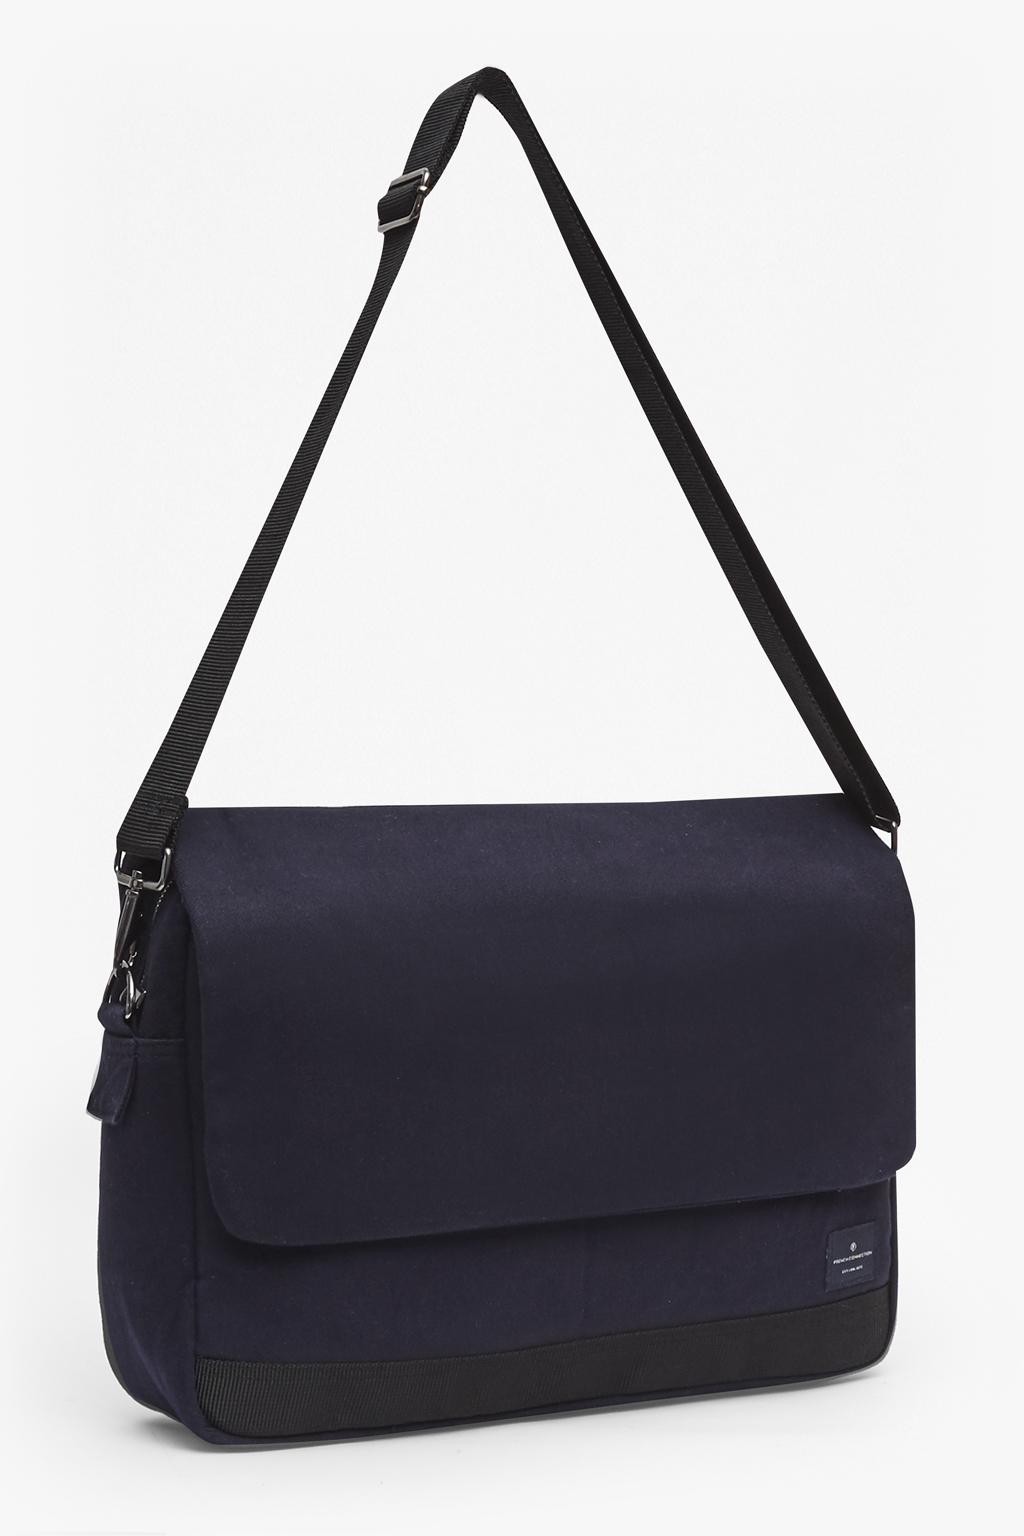 French Connection Canvas Neil Cross Body Messenger Bag in Marine Blue (Blue) for Men